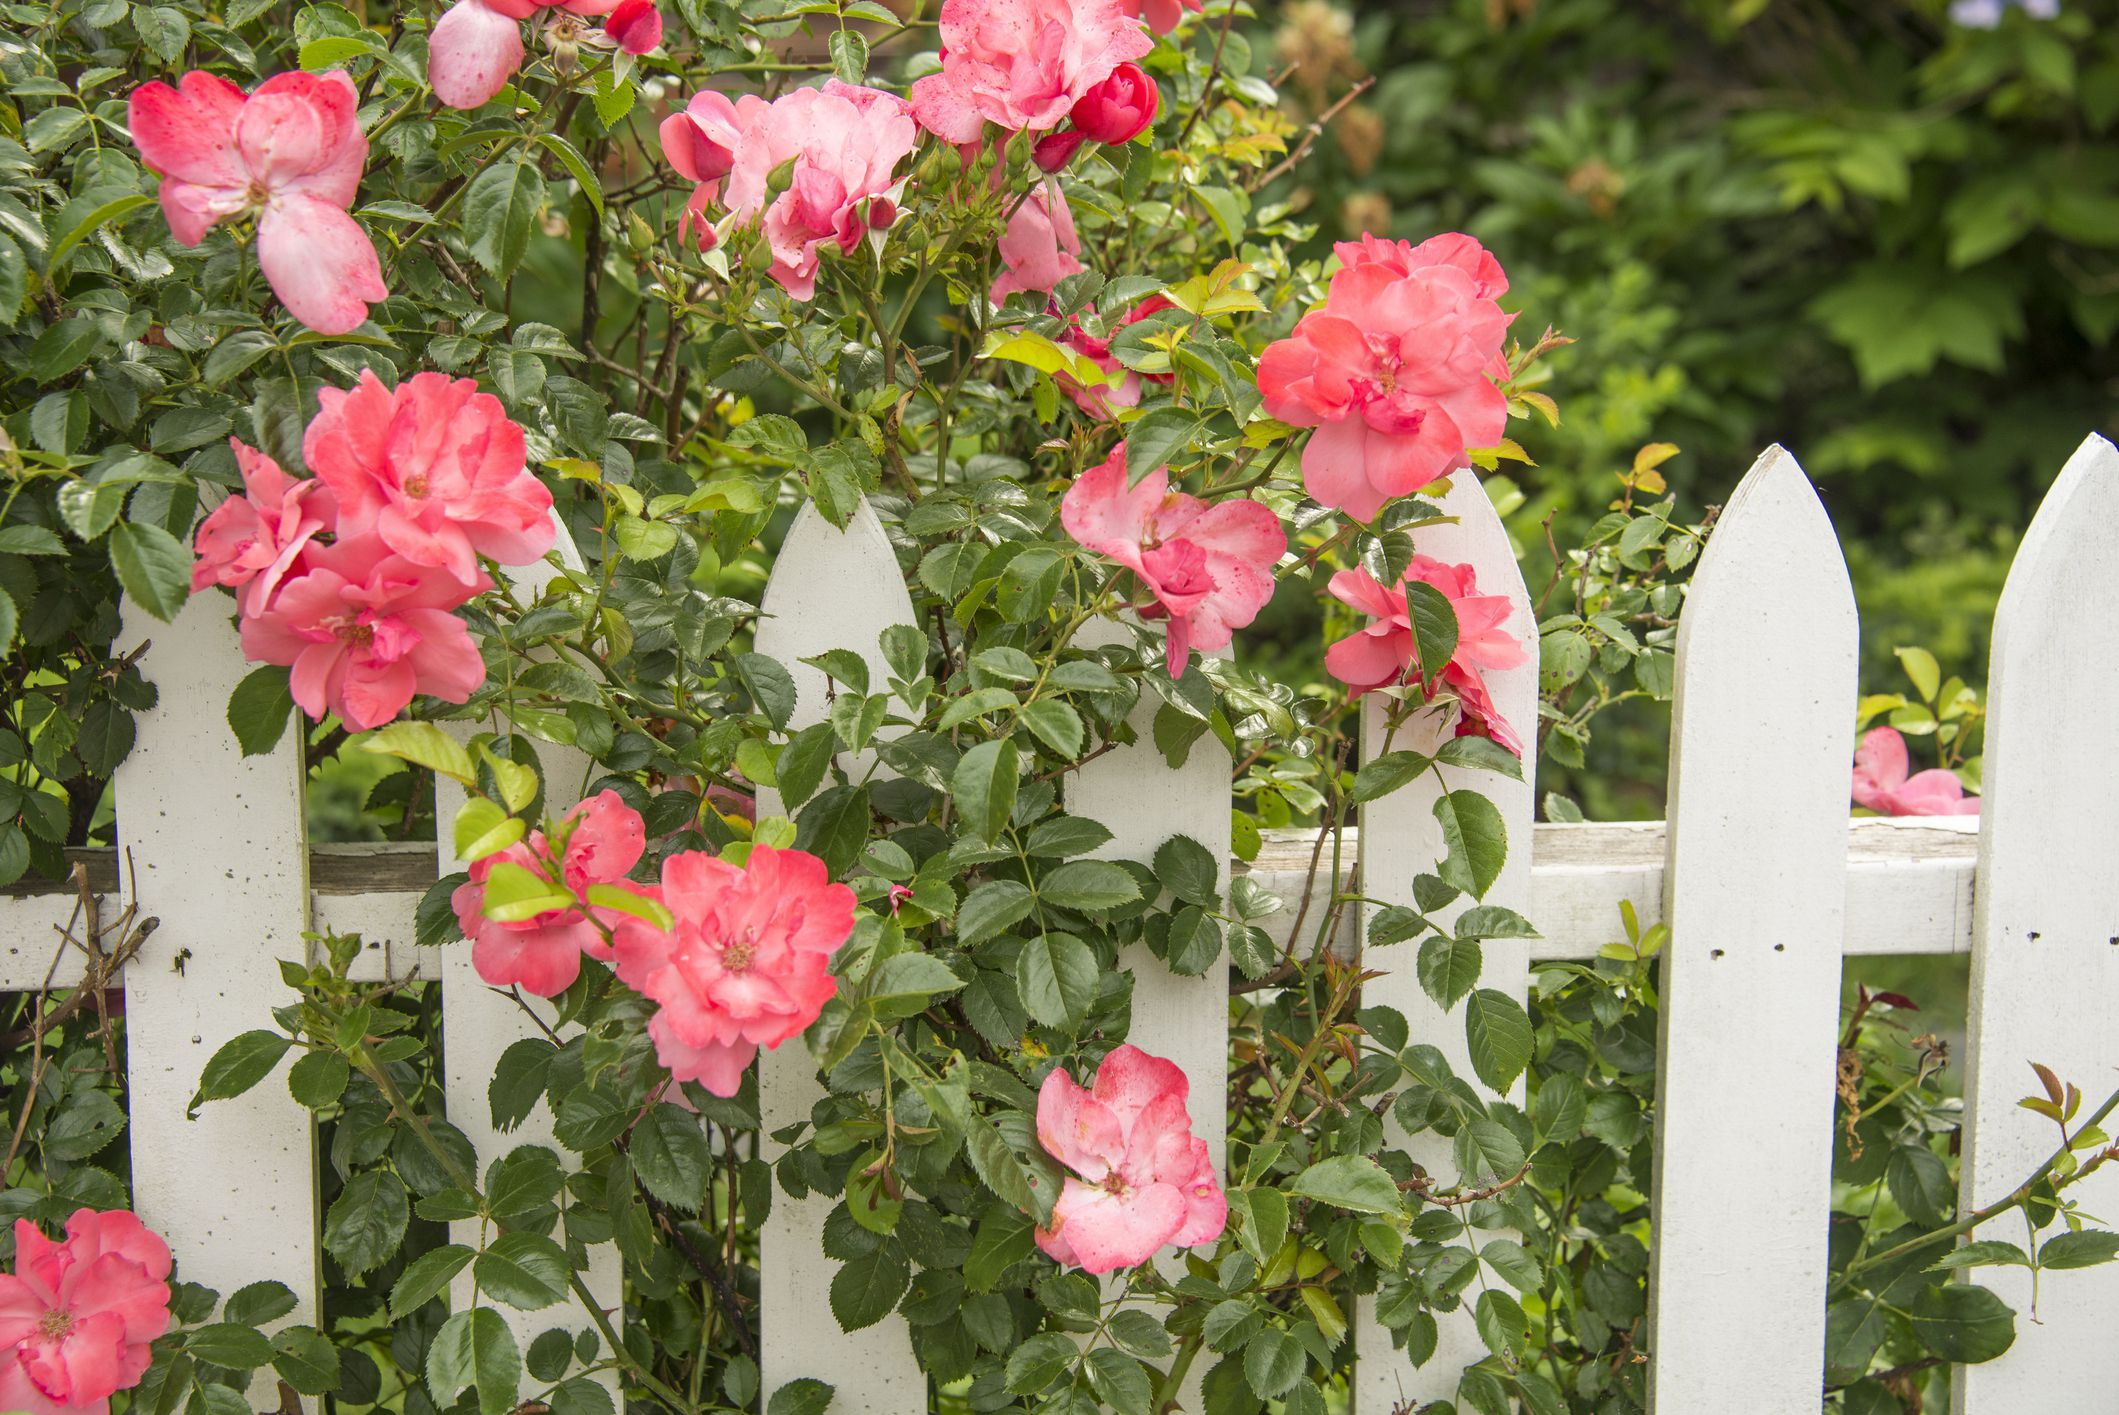 Roses In Garden: Organic Rose Gardening And Care